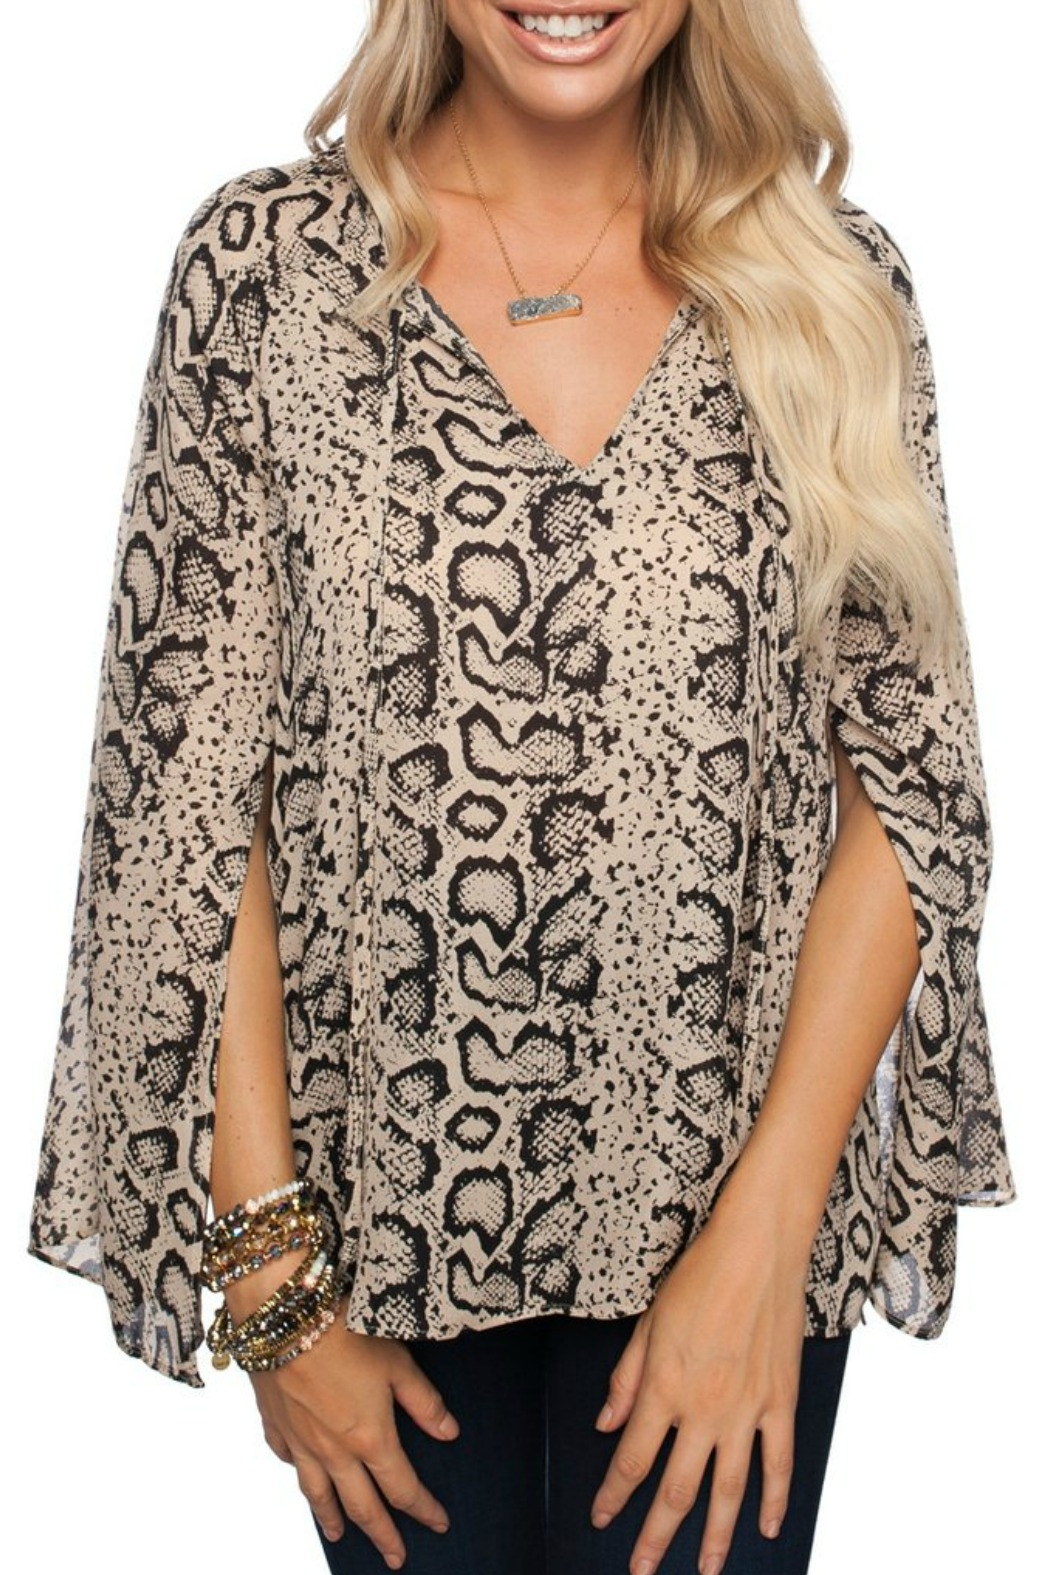 b8319146063d Buddy Love Snake Print Top from Louisiana by Bella Bella — Shoptiques